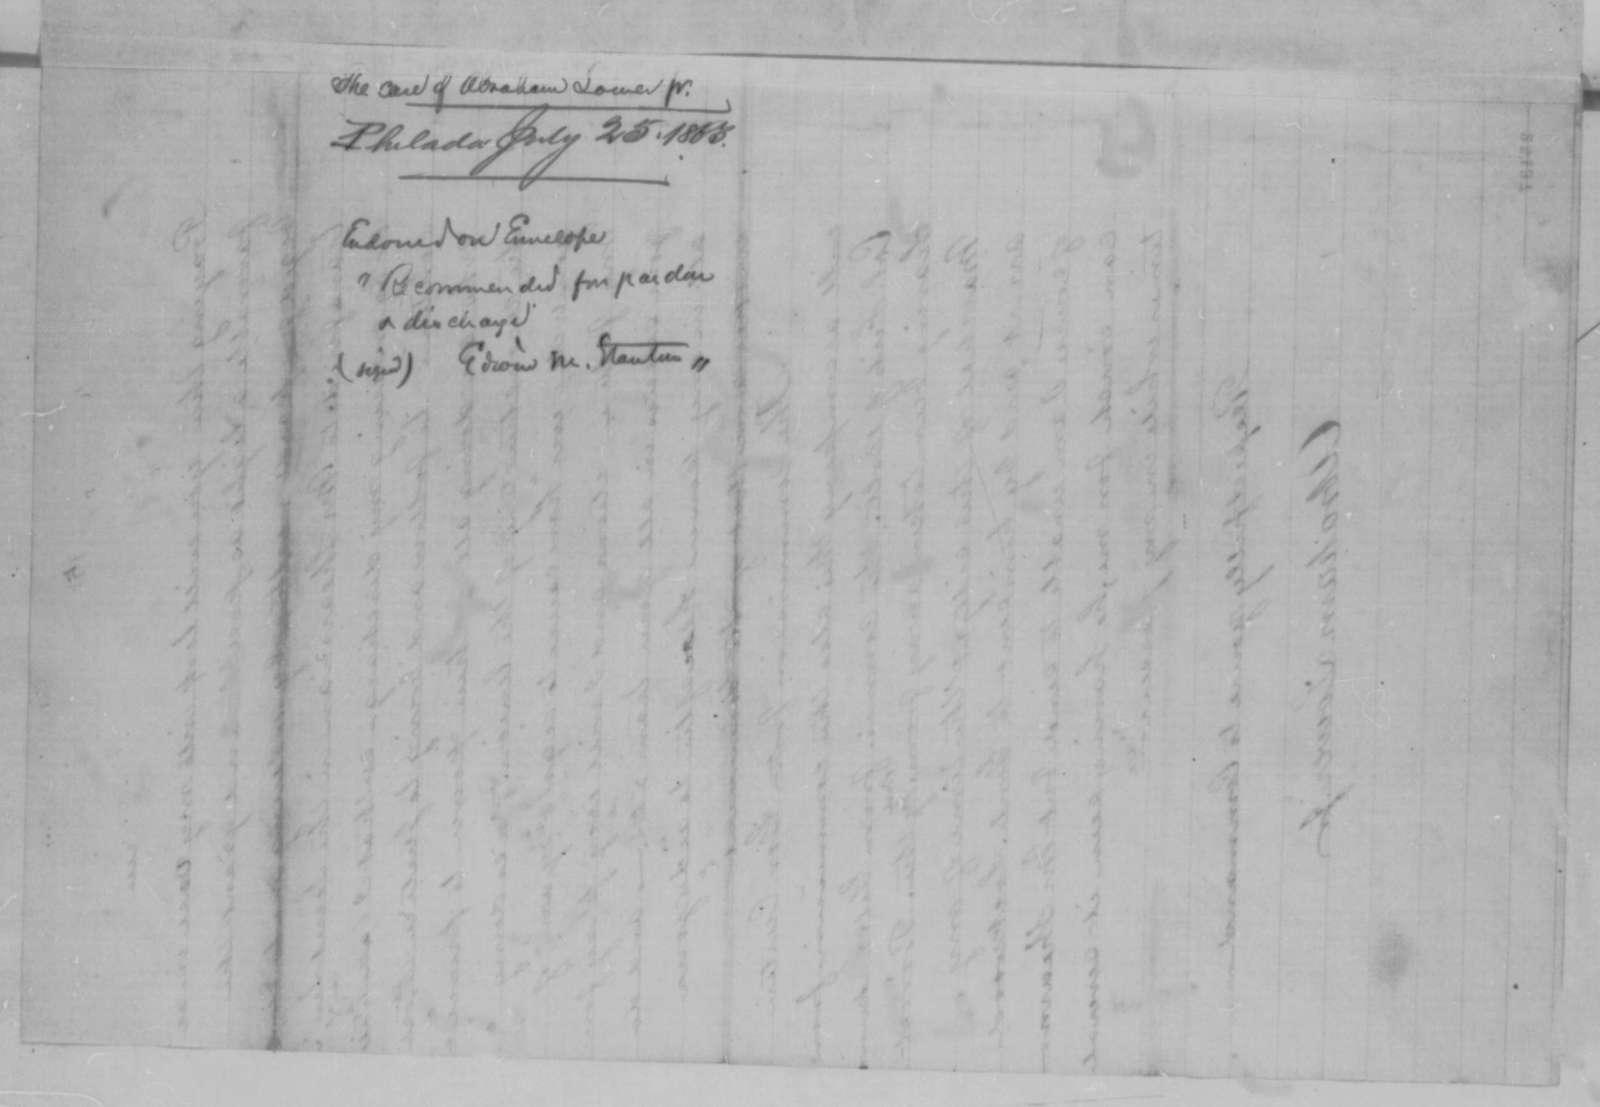 Abraham Lower Jr. to Abraham Lincoln, Saturday, July 25, 1863  (Account of his work in the secret service)